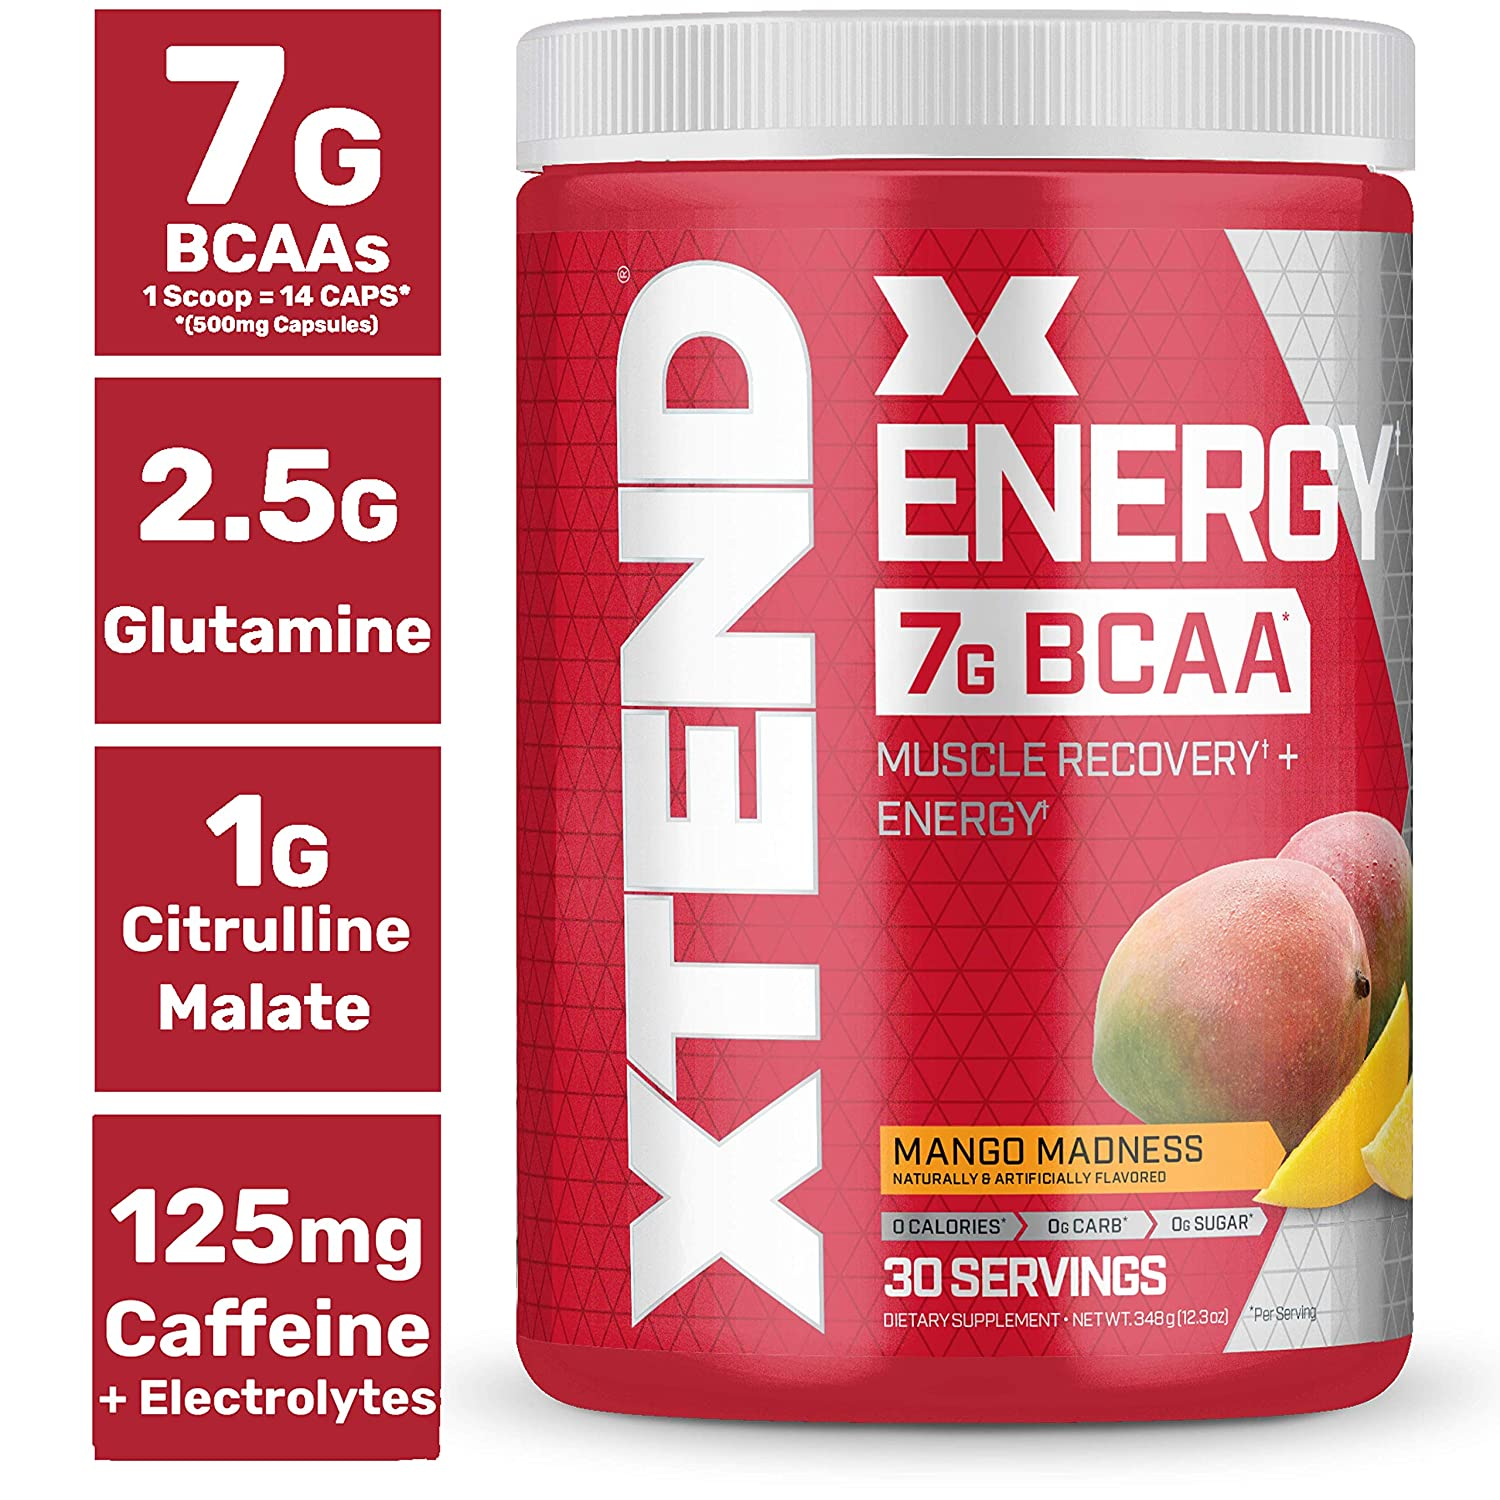 Xtend Energy Bcaa Powder Mango 125mg Caffeine Sugar Free Pre Workout Muscle Recovery Drink with Amino Acids 7g bcaas for Men Women 30 Servings Packaging May Vary